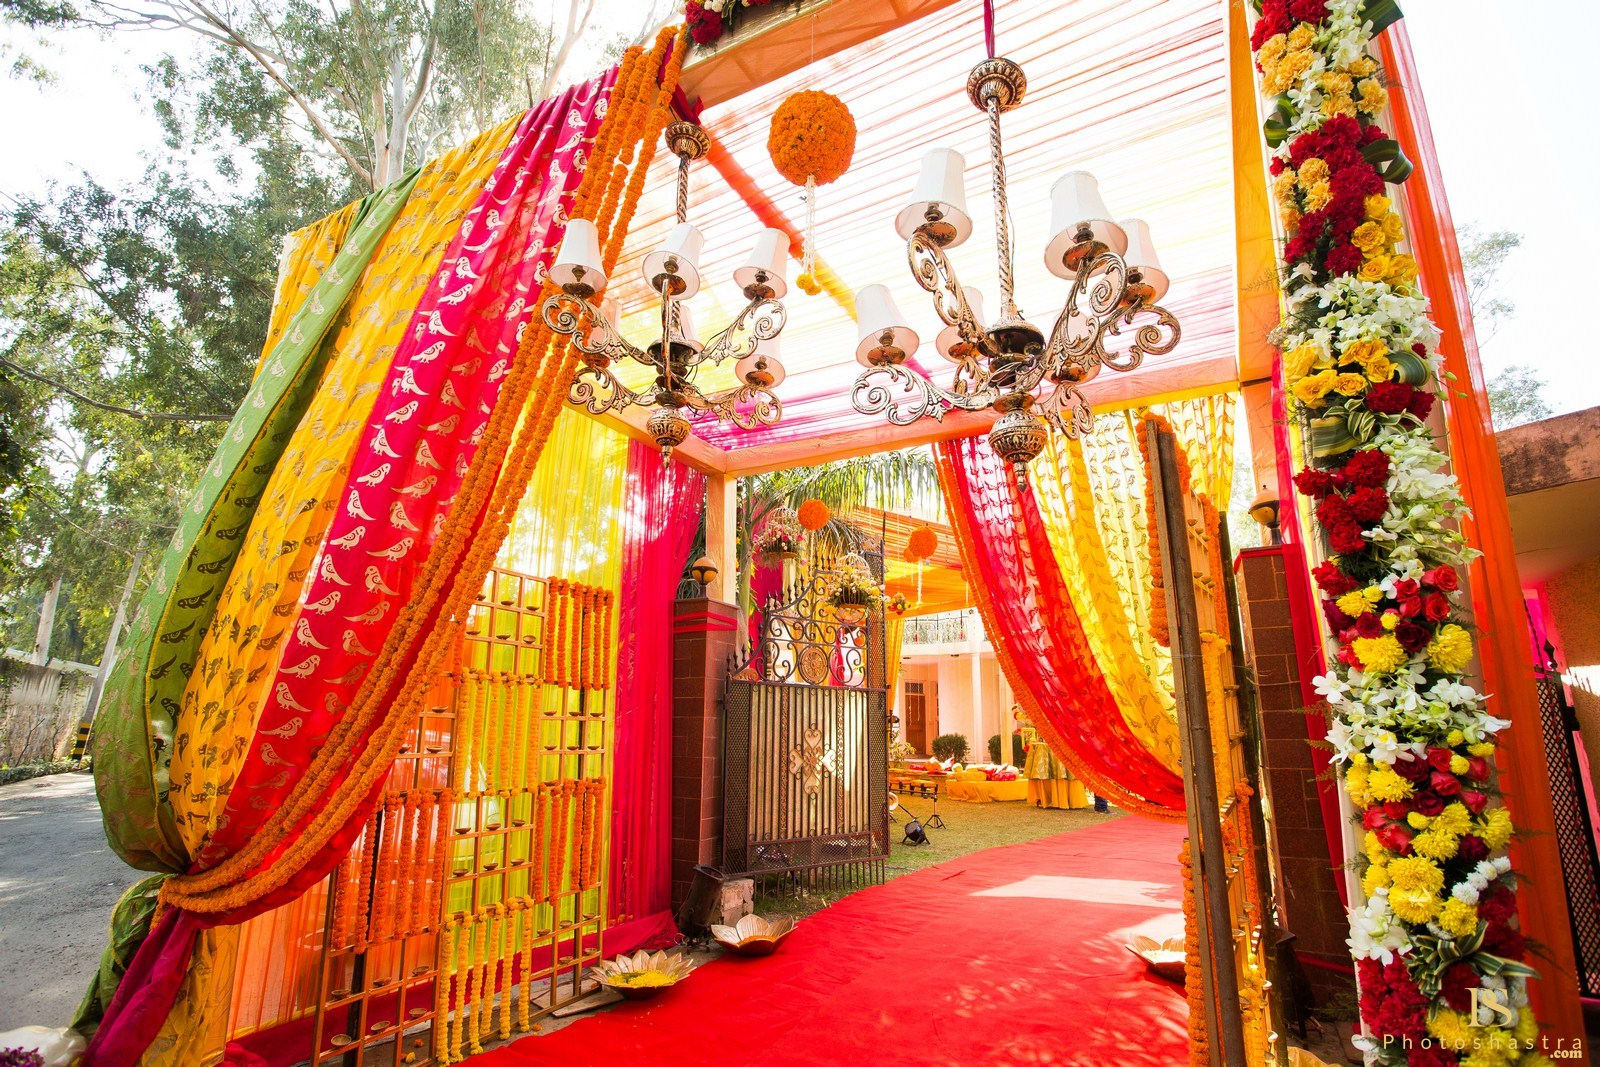 beautiful entrance decoration:photoshastra